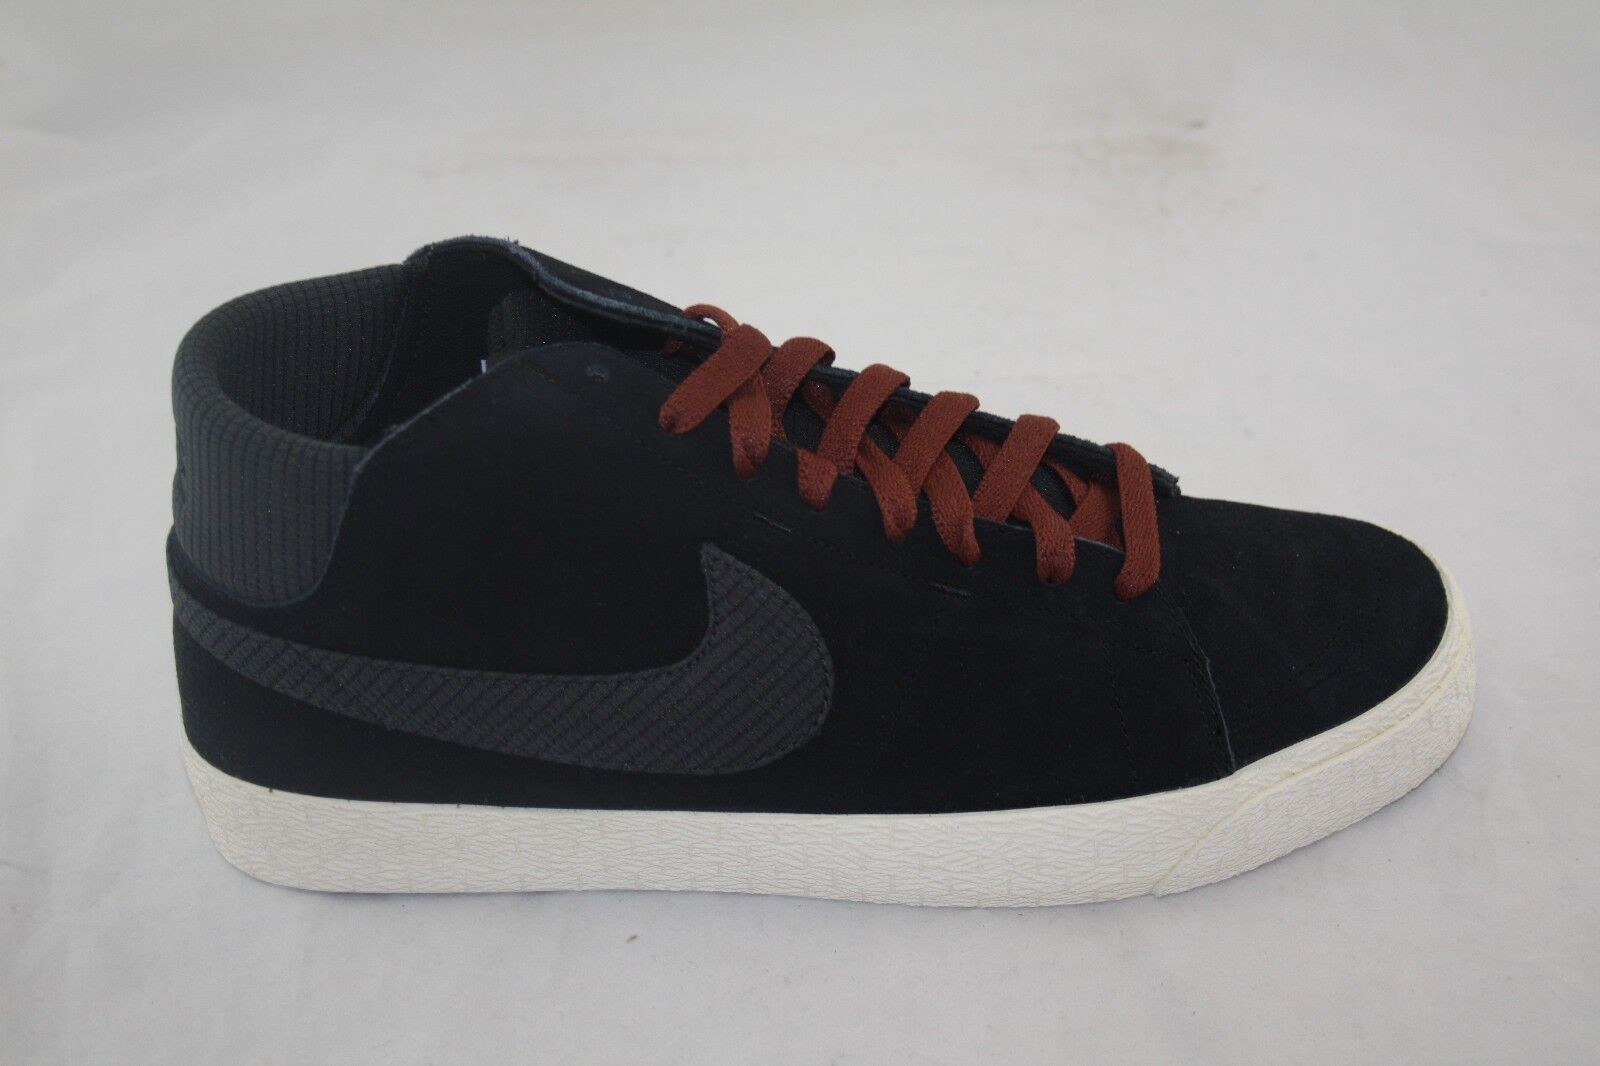 MEN'S NIKE BLAZER MID LR 510965-002 BLACK/ANTHRACITE-FIELD BROWN 80.00